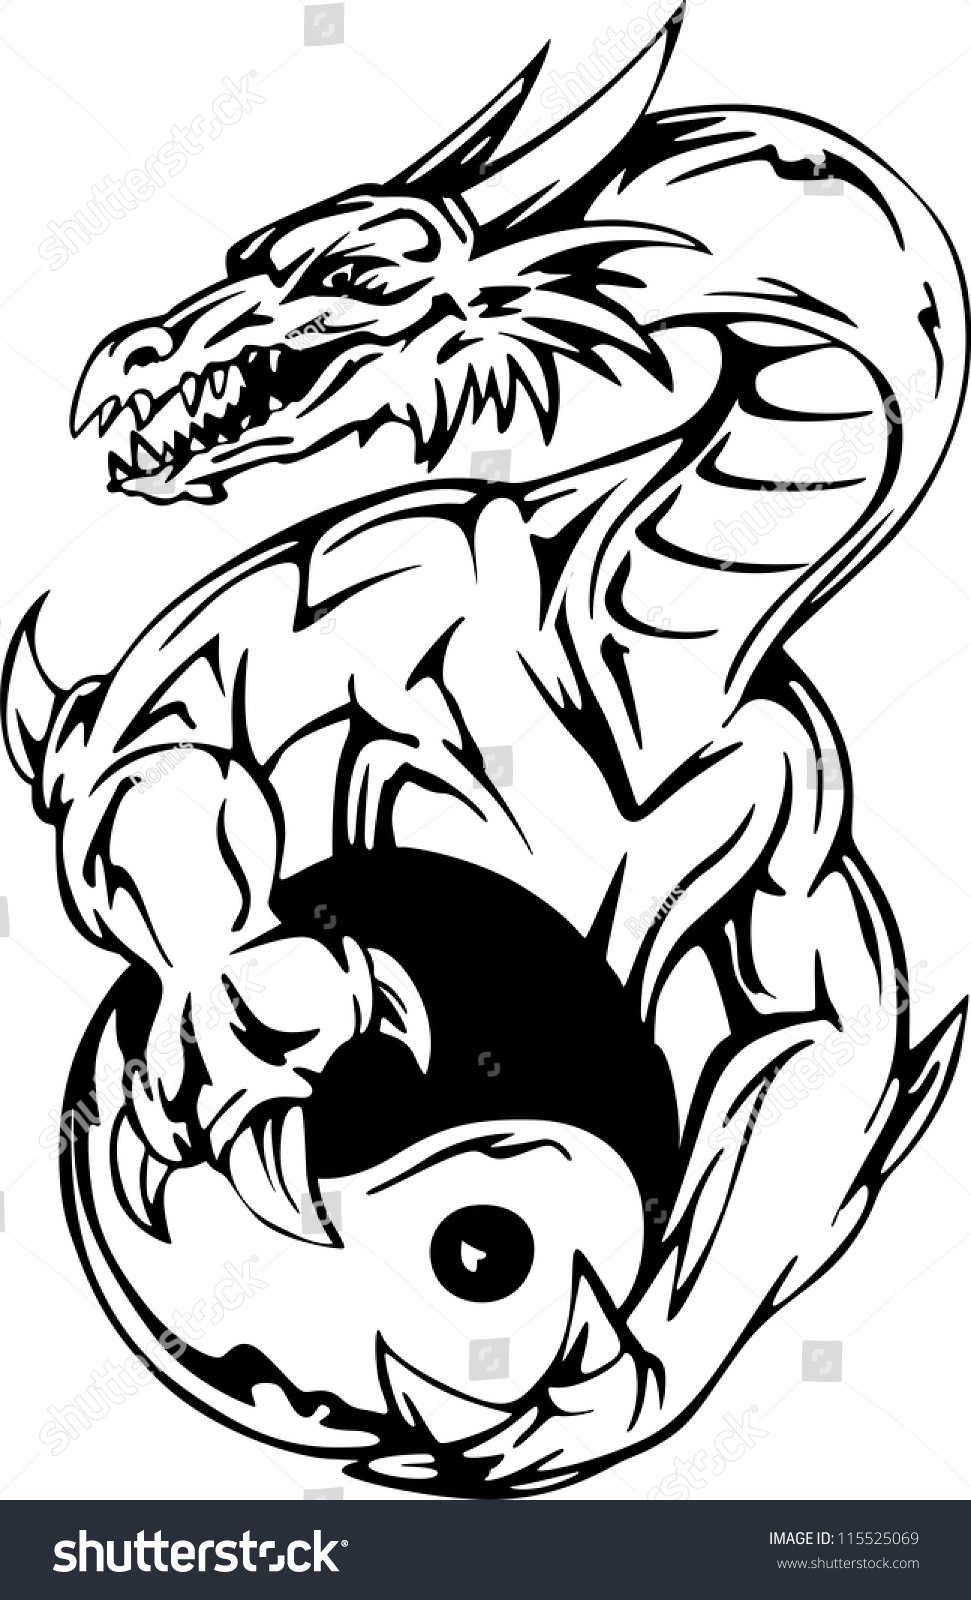 Save To A Lightbox Dragon Tattoo With Yinyang Sign Eps Vector Illustration  How To Draw A